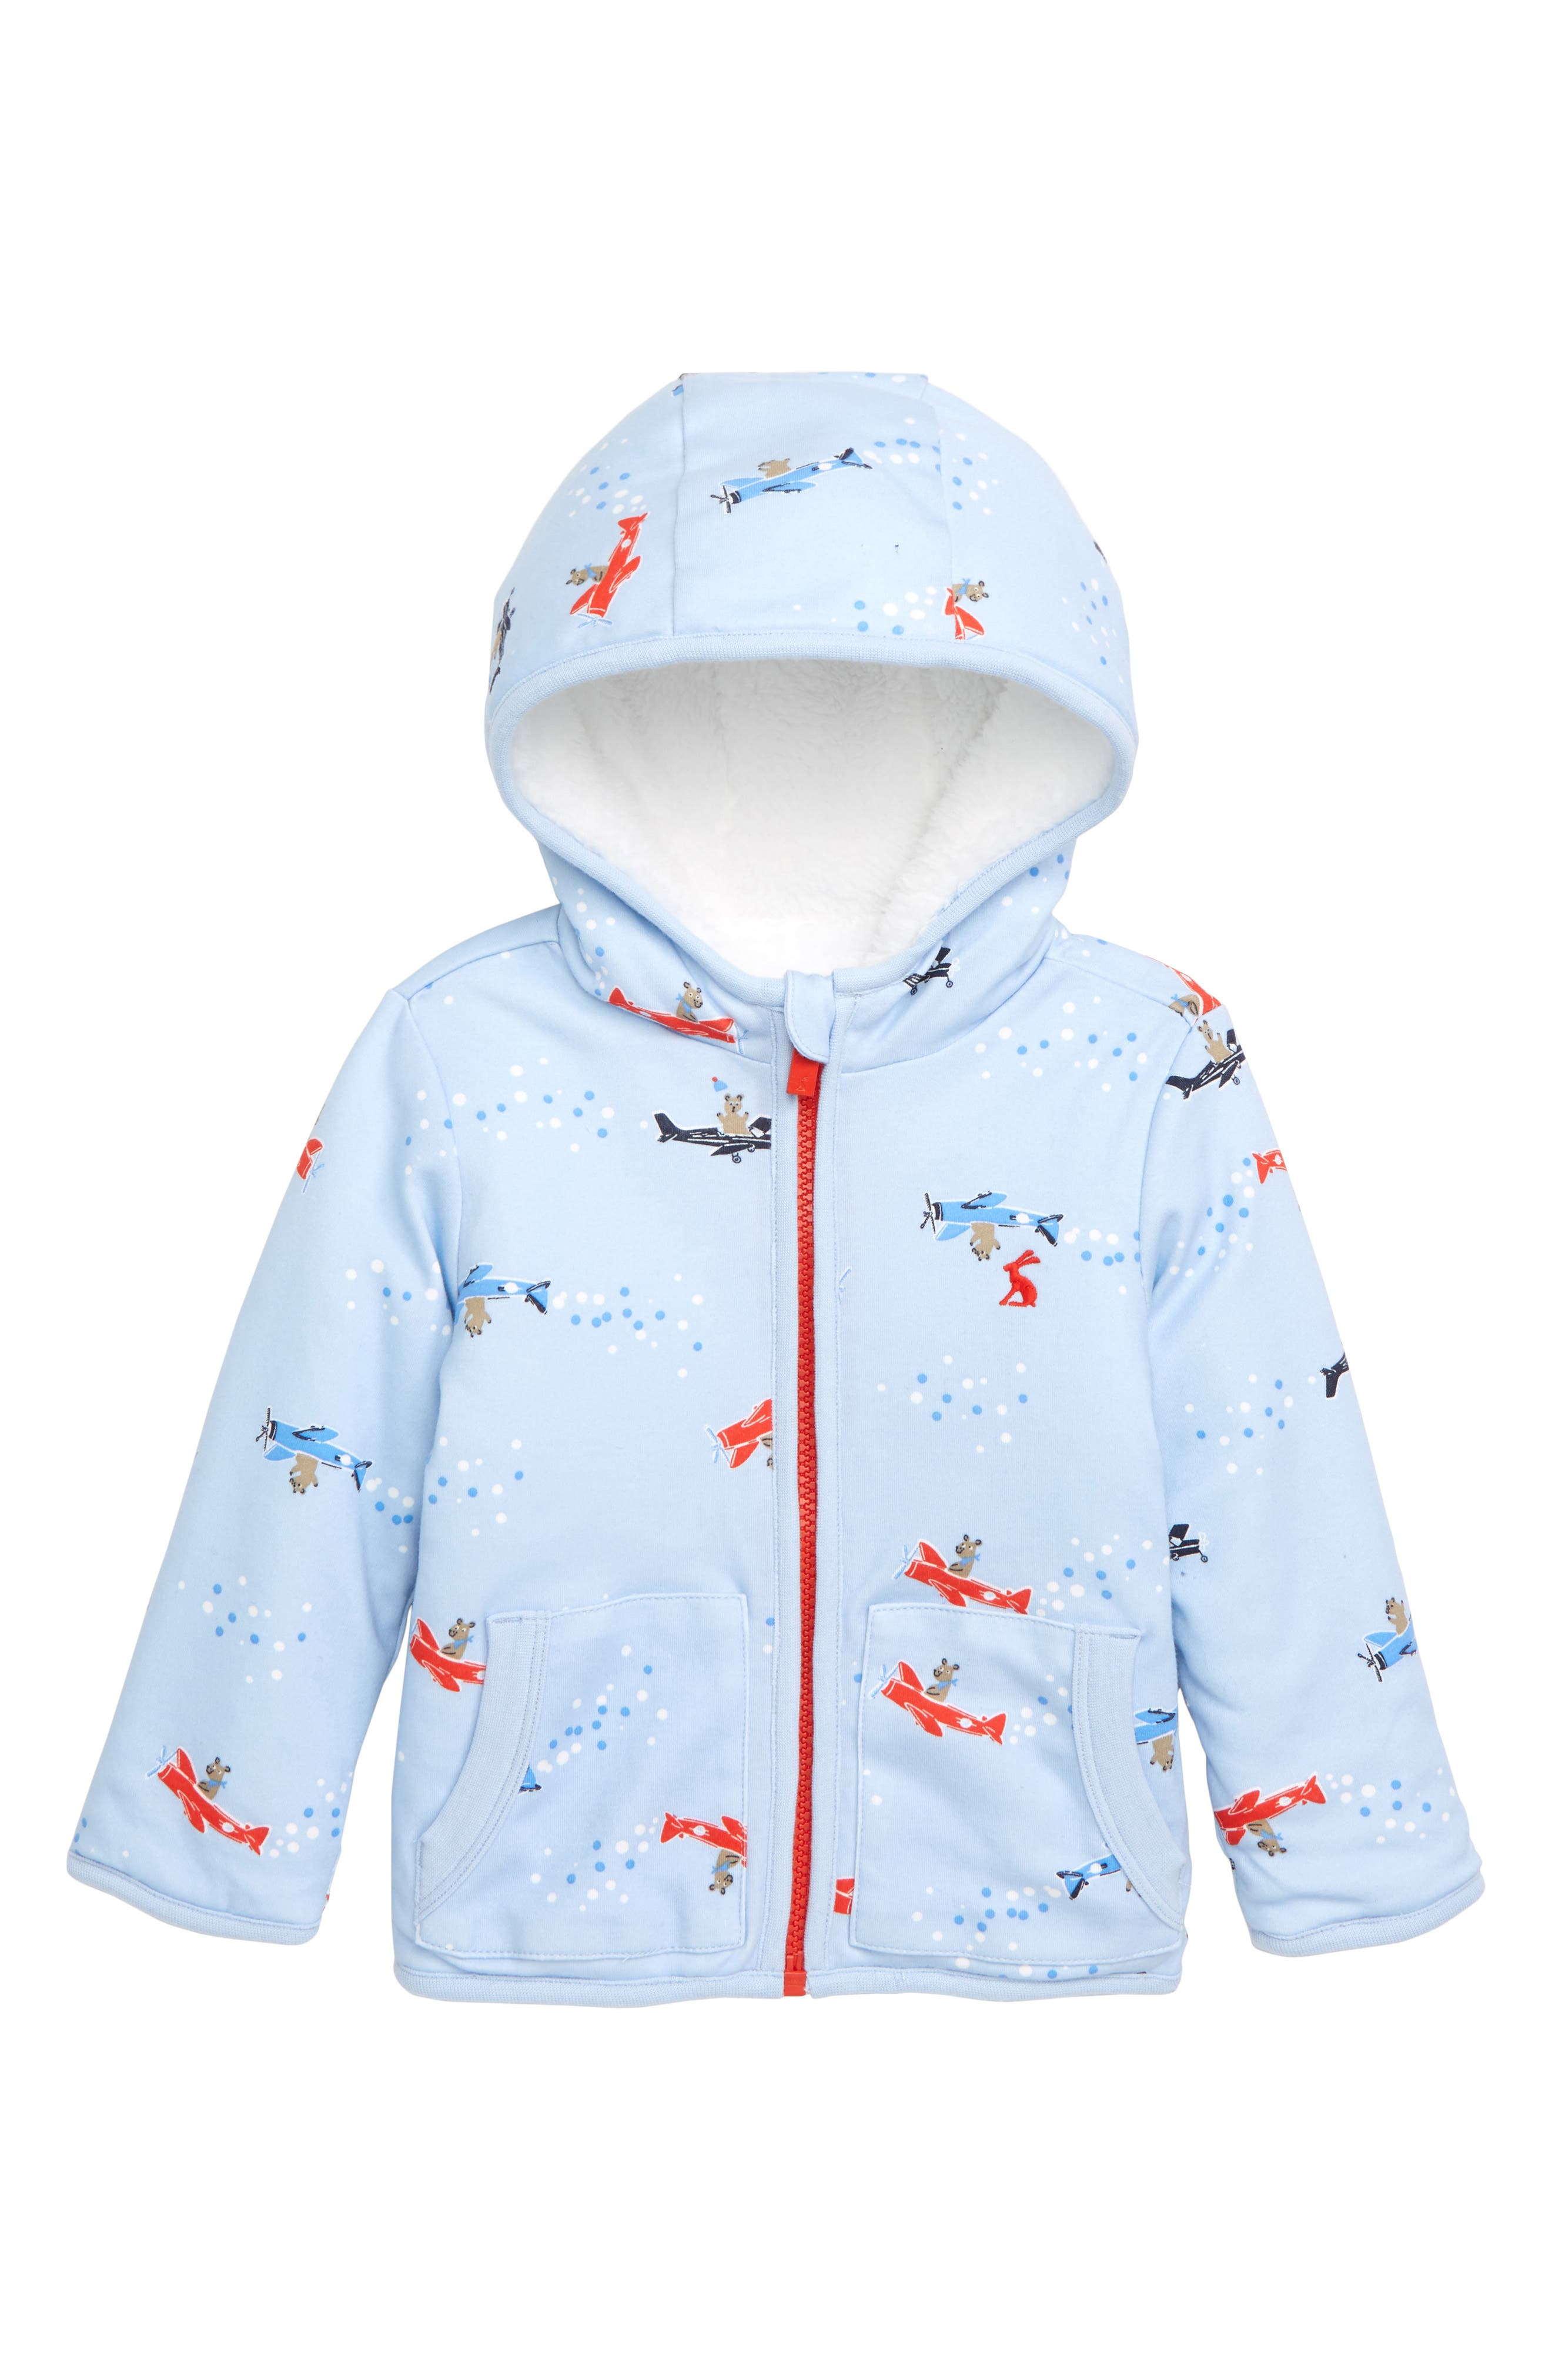 JOULES James Reversible Fleece Jacket, Main, color, BLPLNEBEAR